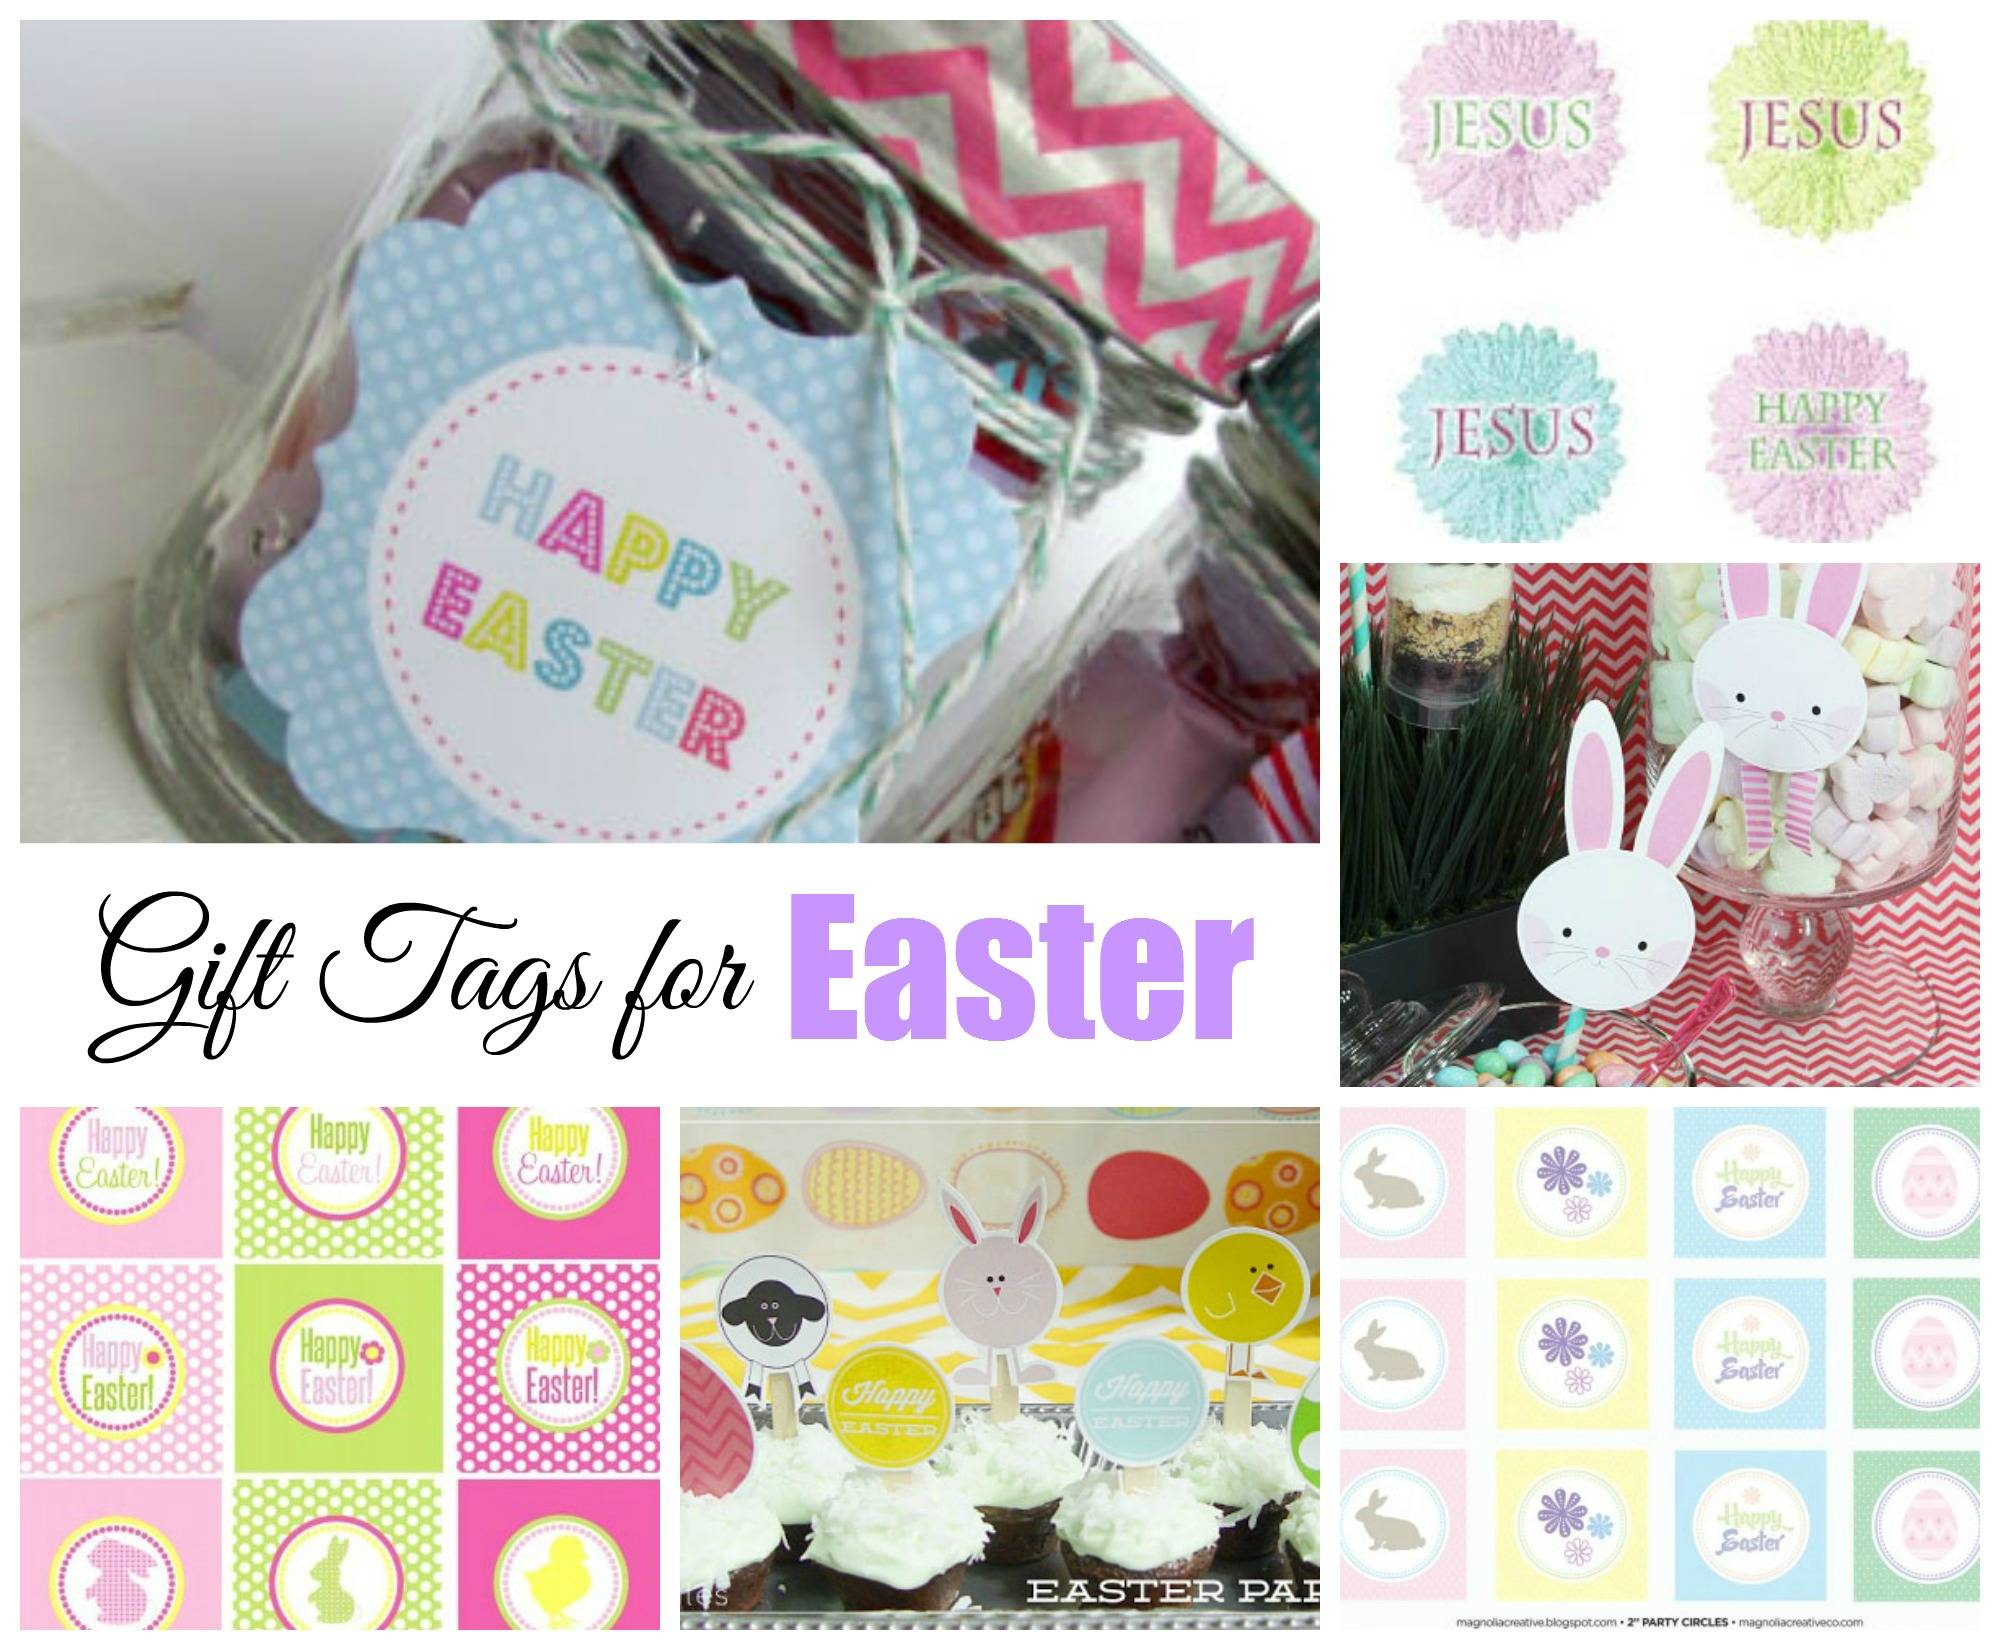 Easter Free Printable Gift Tags   Celebrating Holidays - Free Printable Easter Images